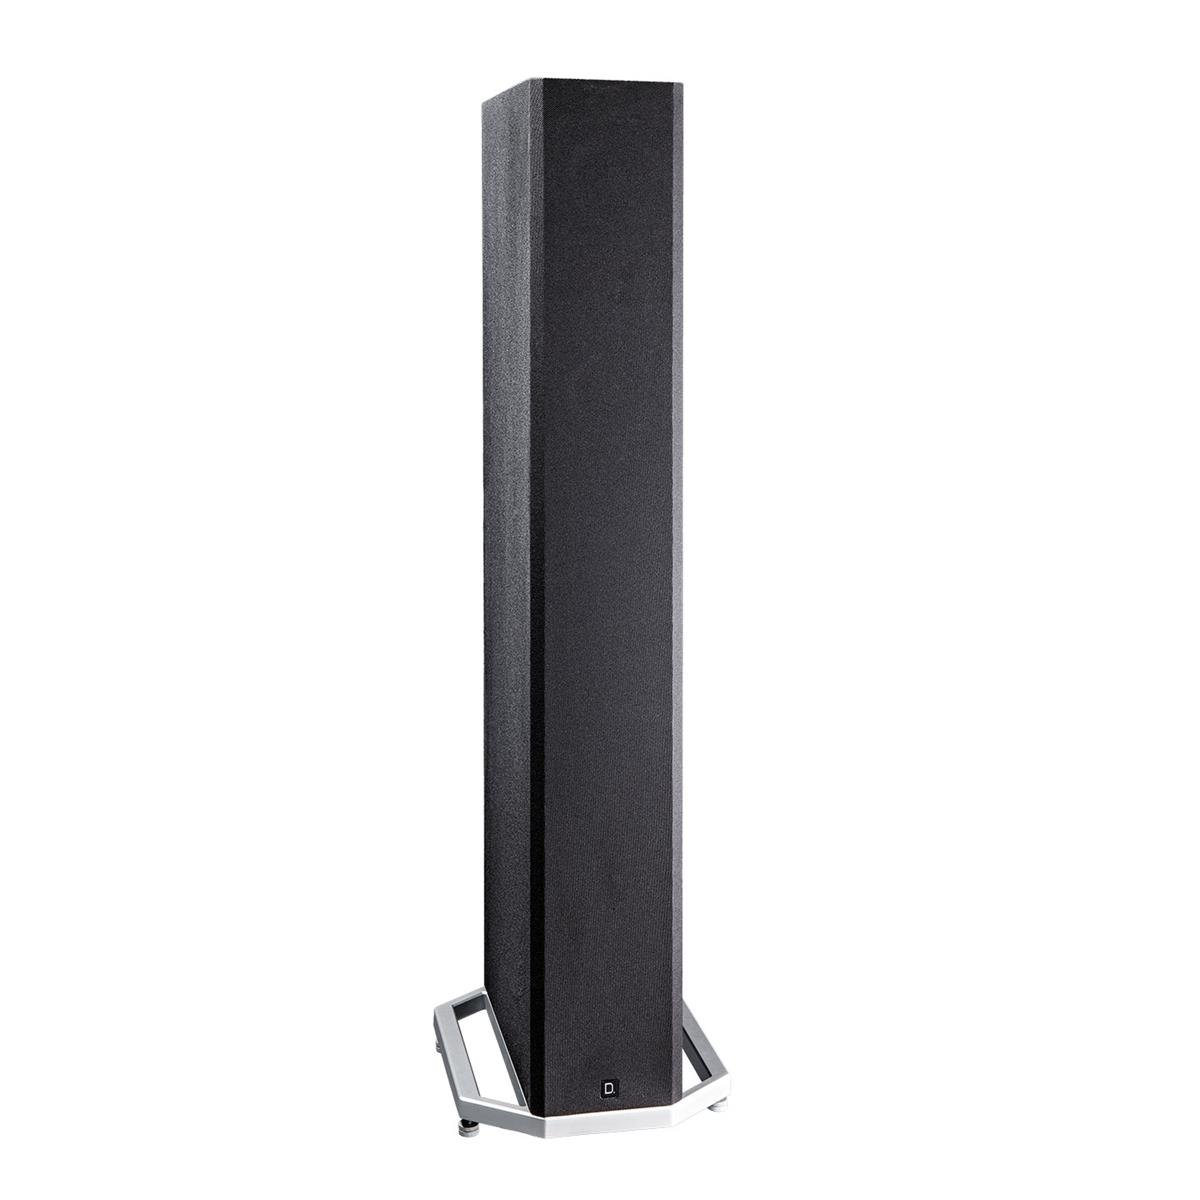 """Definitive Technology BP9040 High-Performance Tower Speaker with Integrated 8"""" Powered Subwoofer - (single speaker)"""